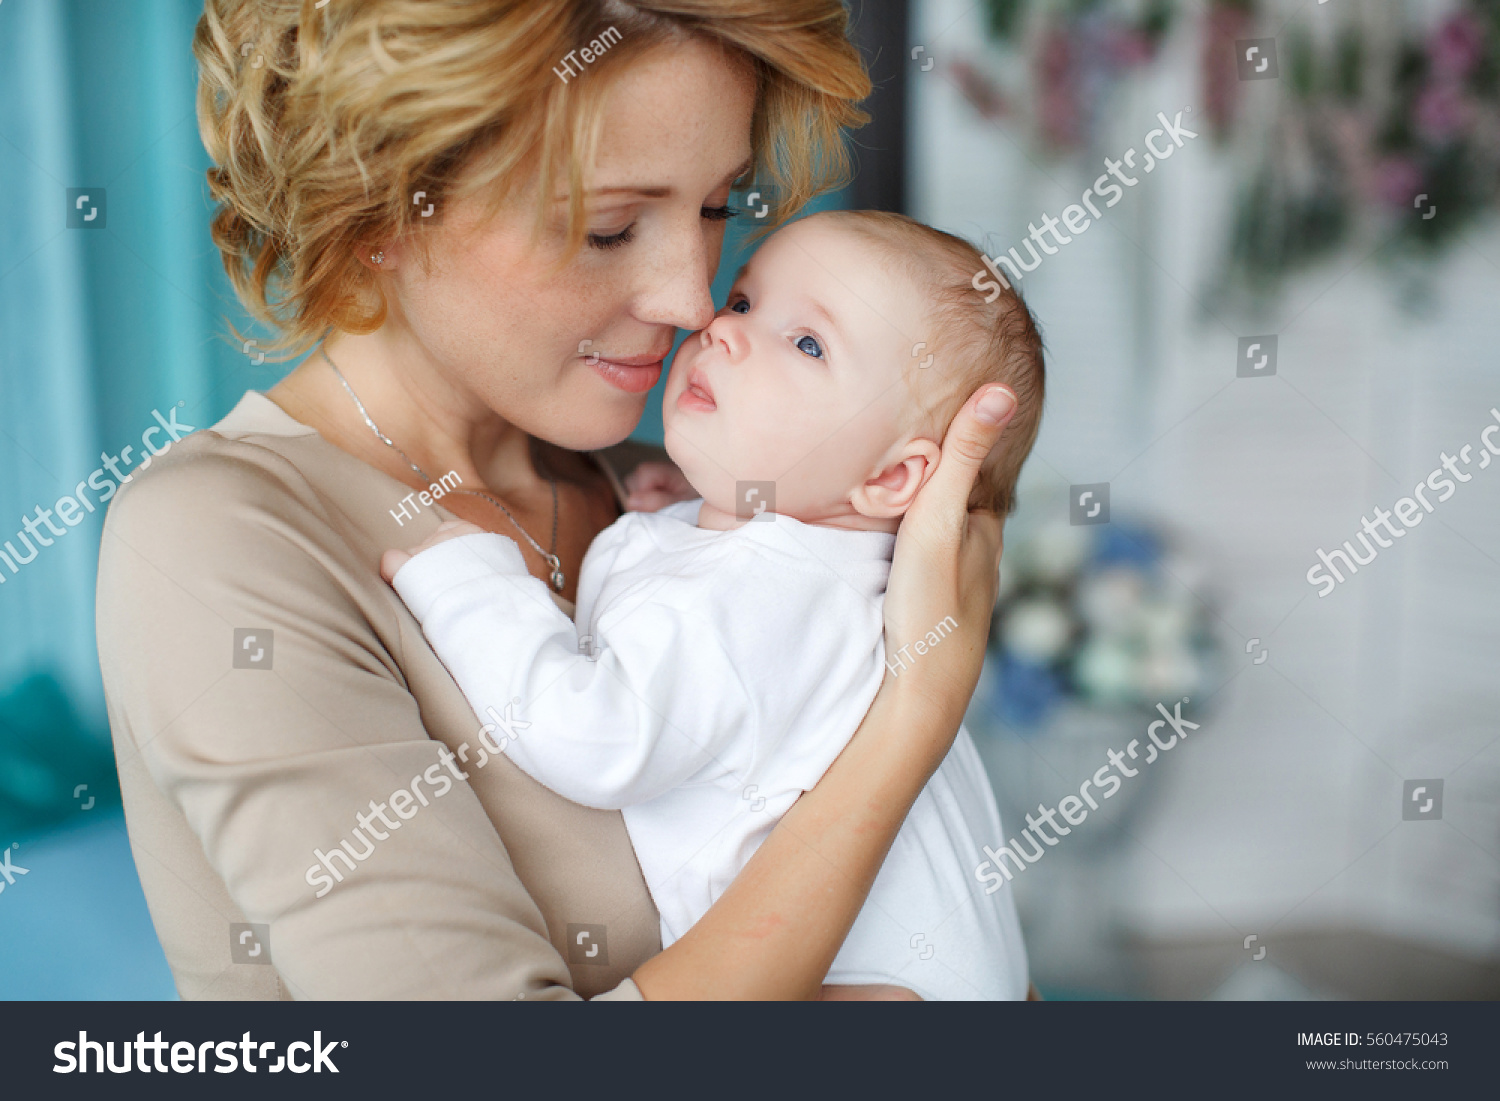 Young Mother Holding Her Newborn Child Stock Photo ...